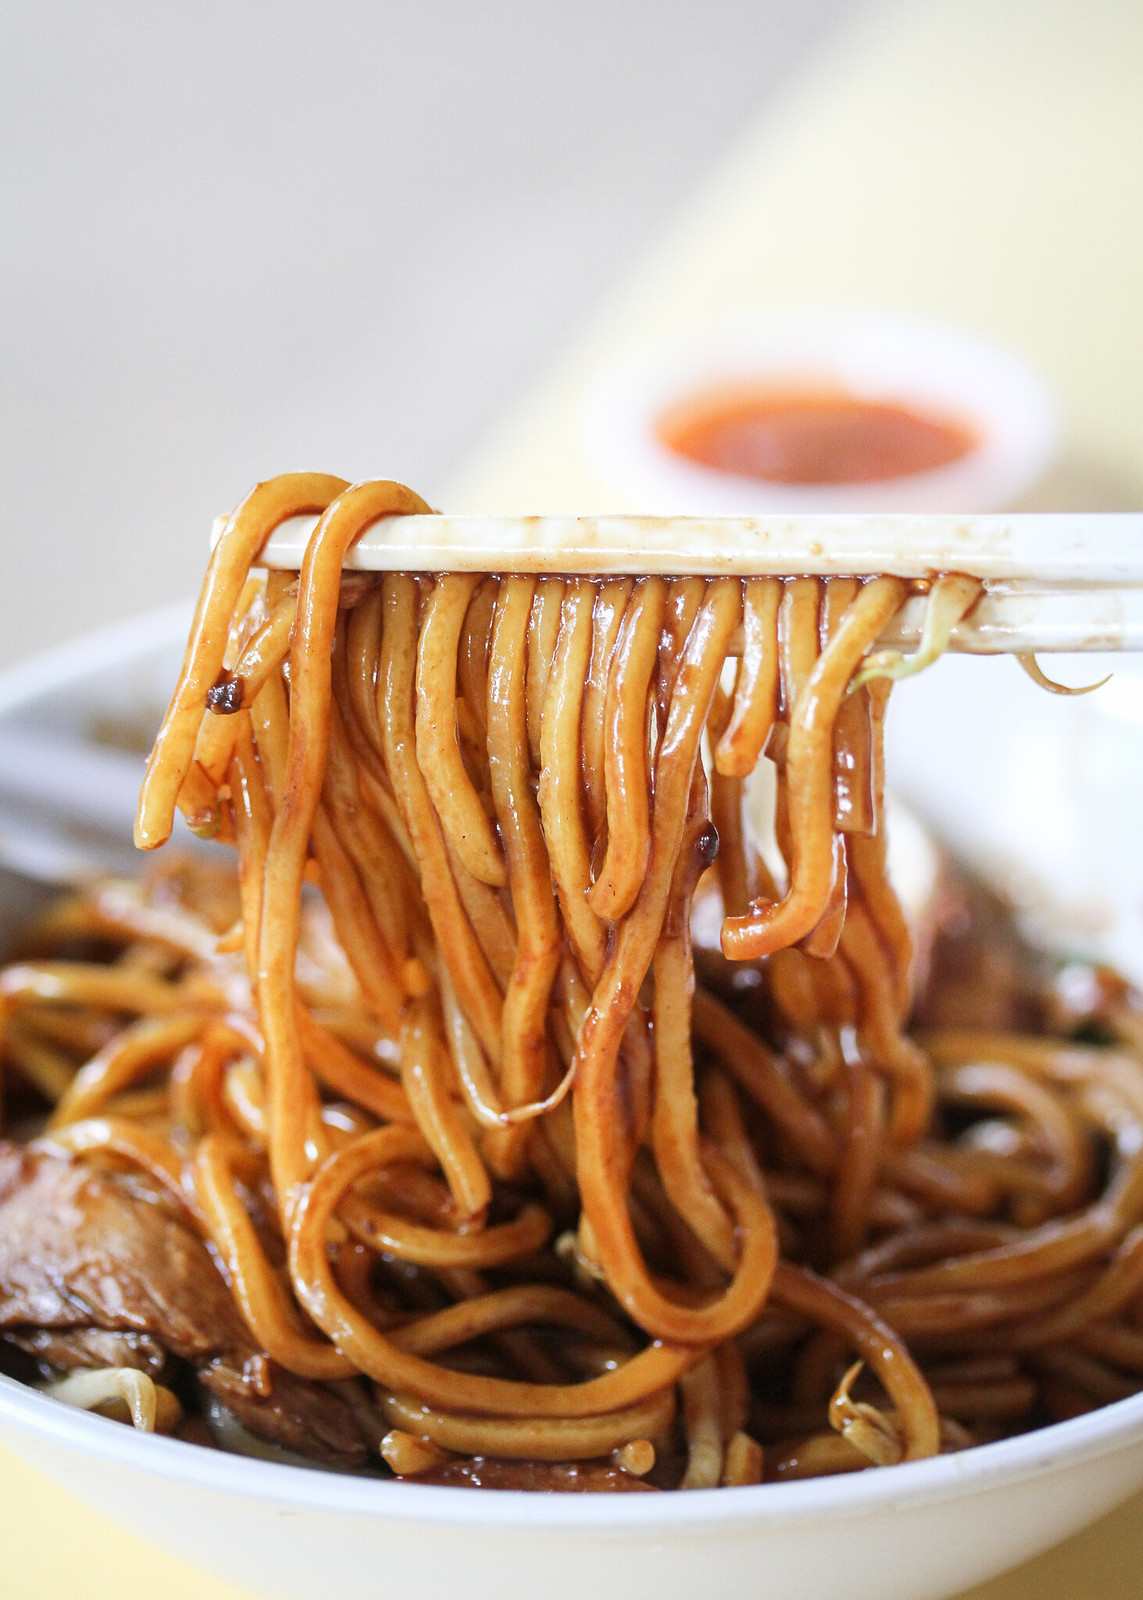 Chuan Kee Boneless Braised Duck Noodles (Chopsticks)